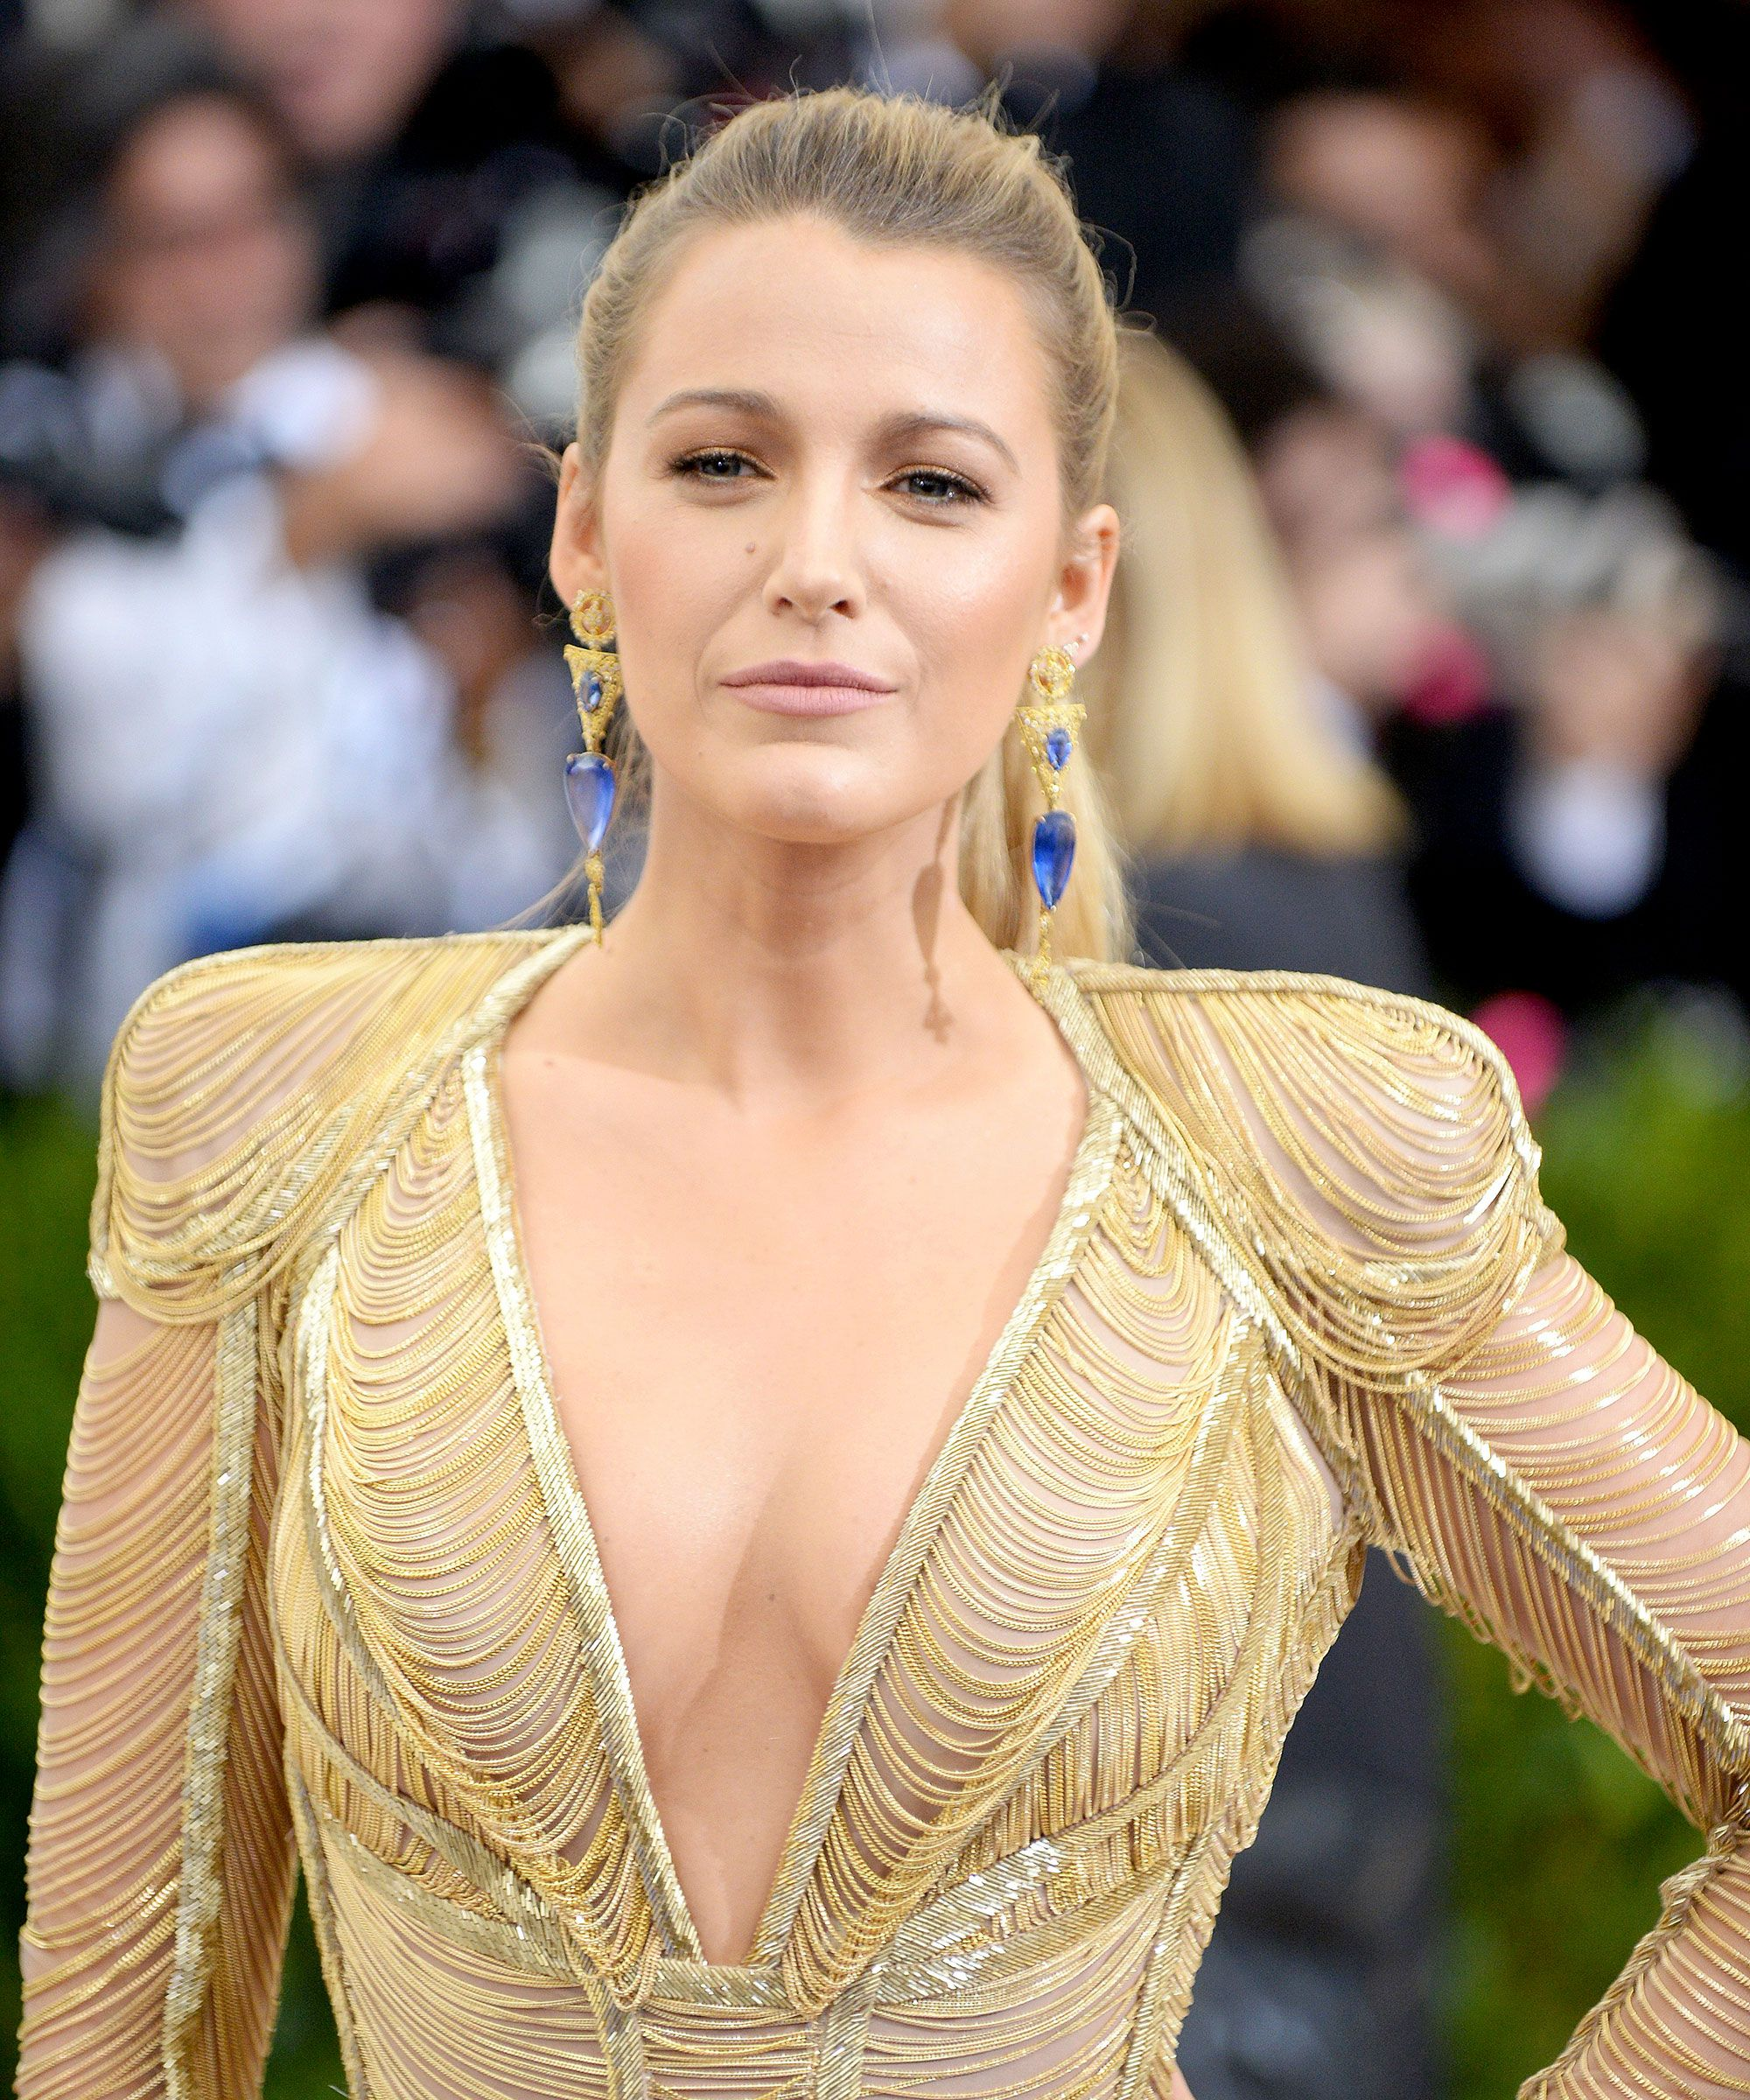 Blake-Lively-Cleavage-Show-min